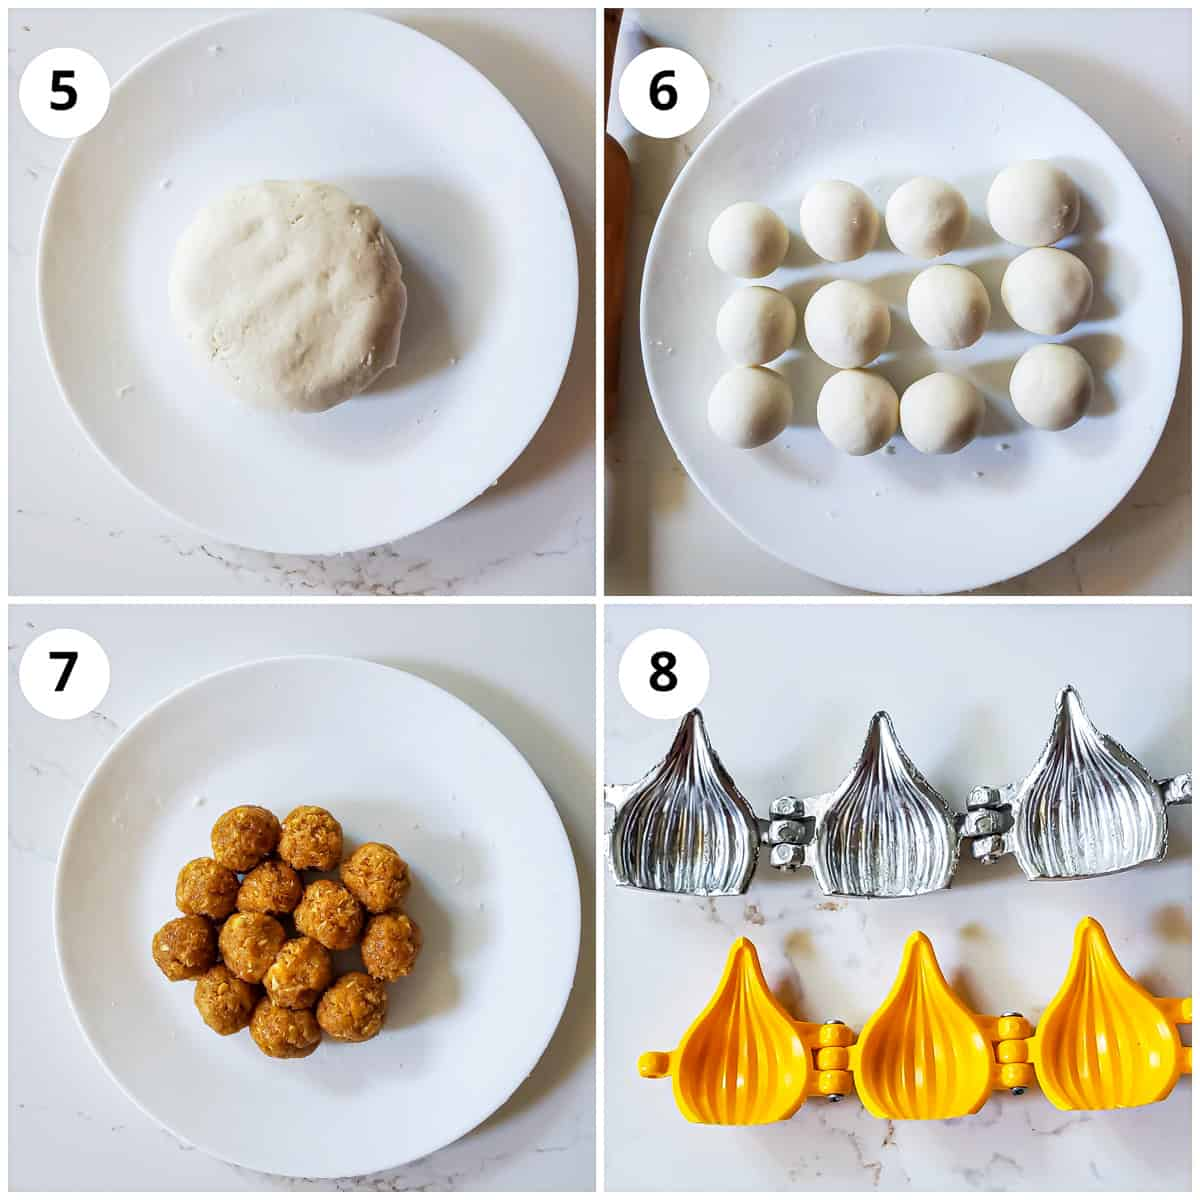 Pics of rice flour dough and filling divided into balls along with molds